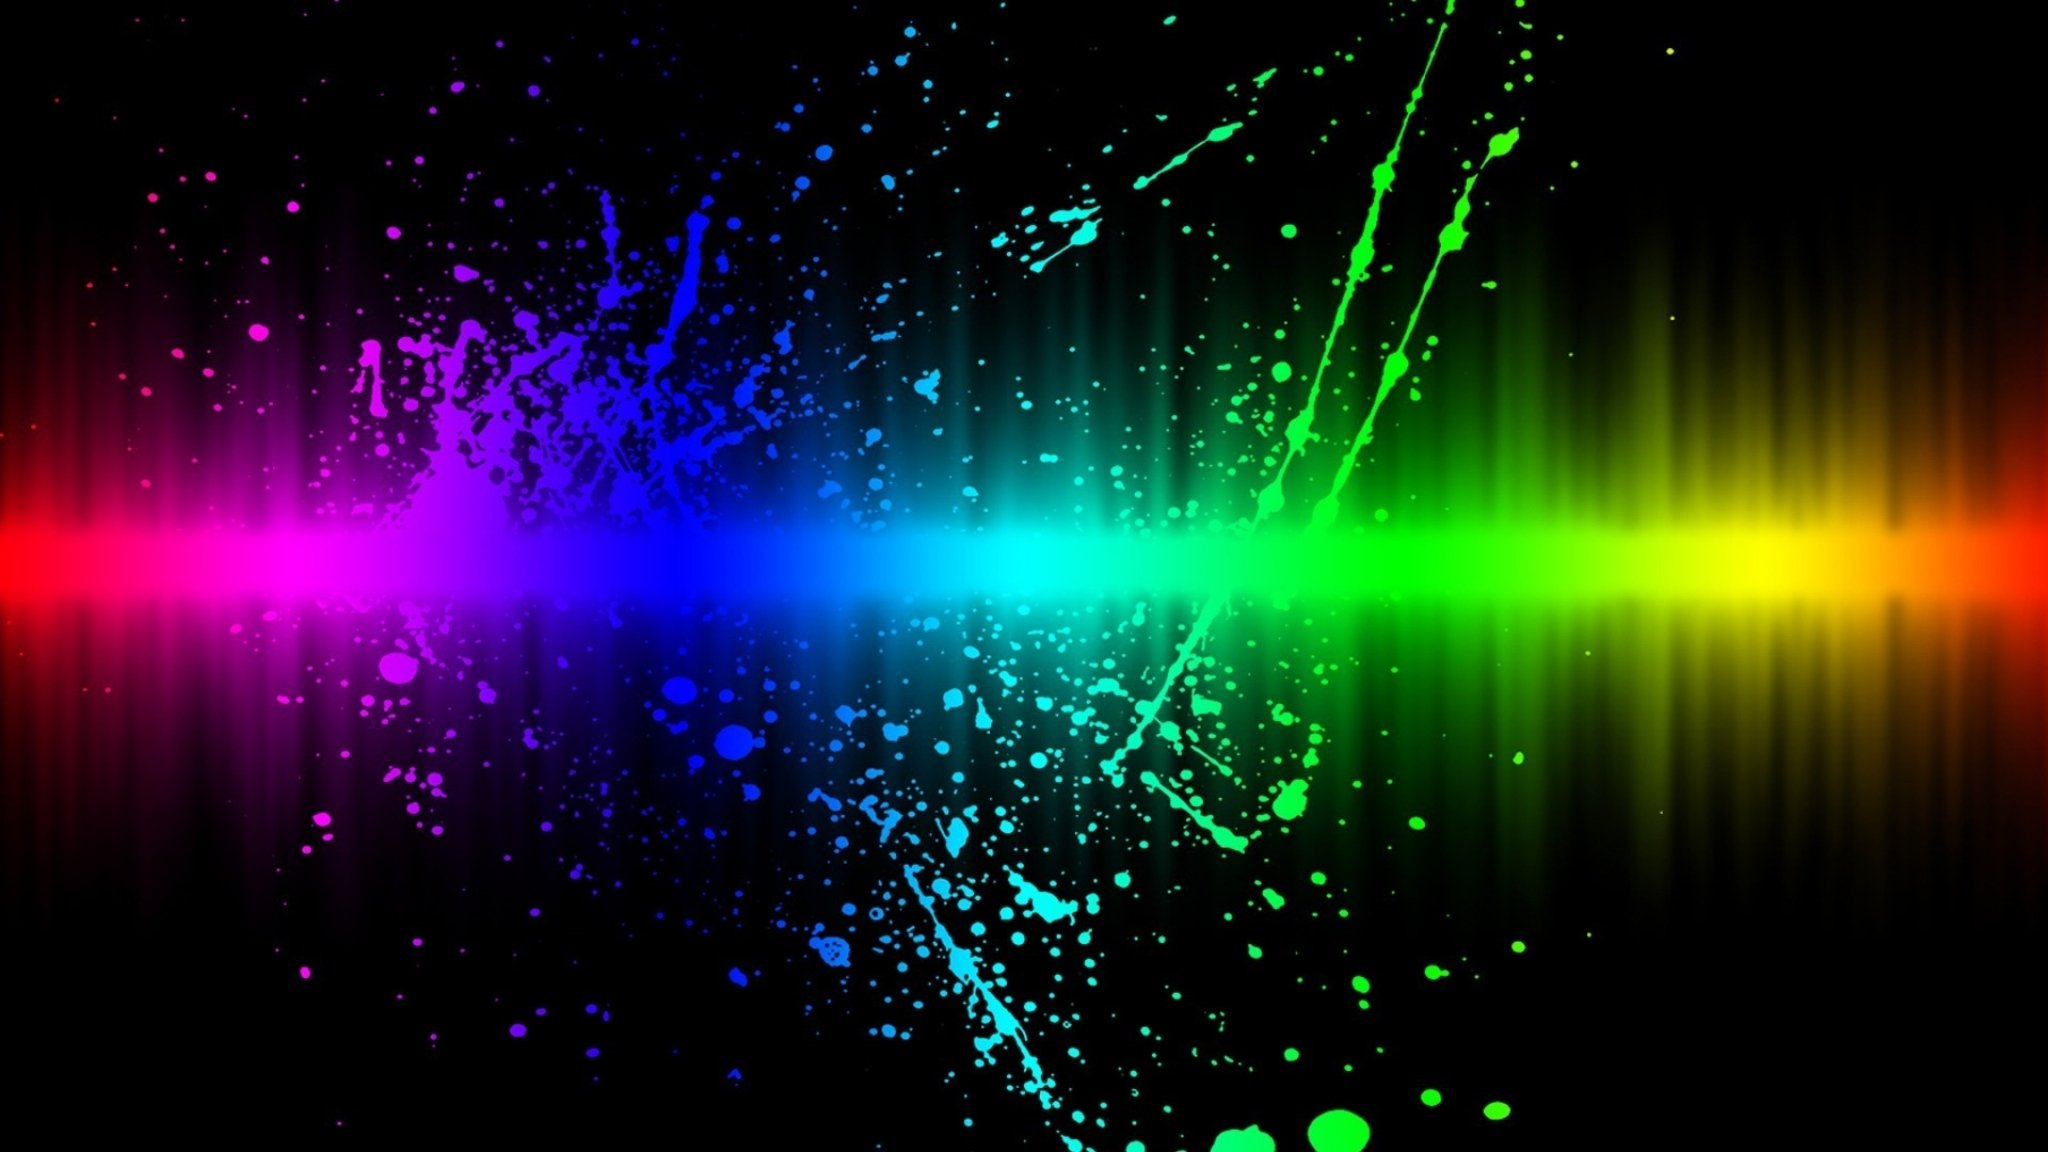 Wallpaper 2048x1152 Line Paint Rainbow Blots HD HD Background 2048x1152